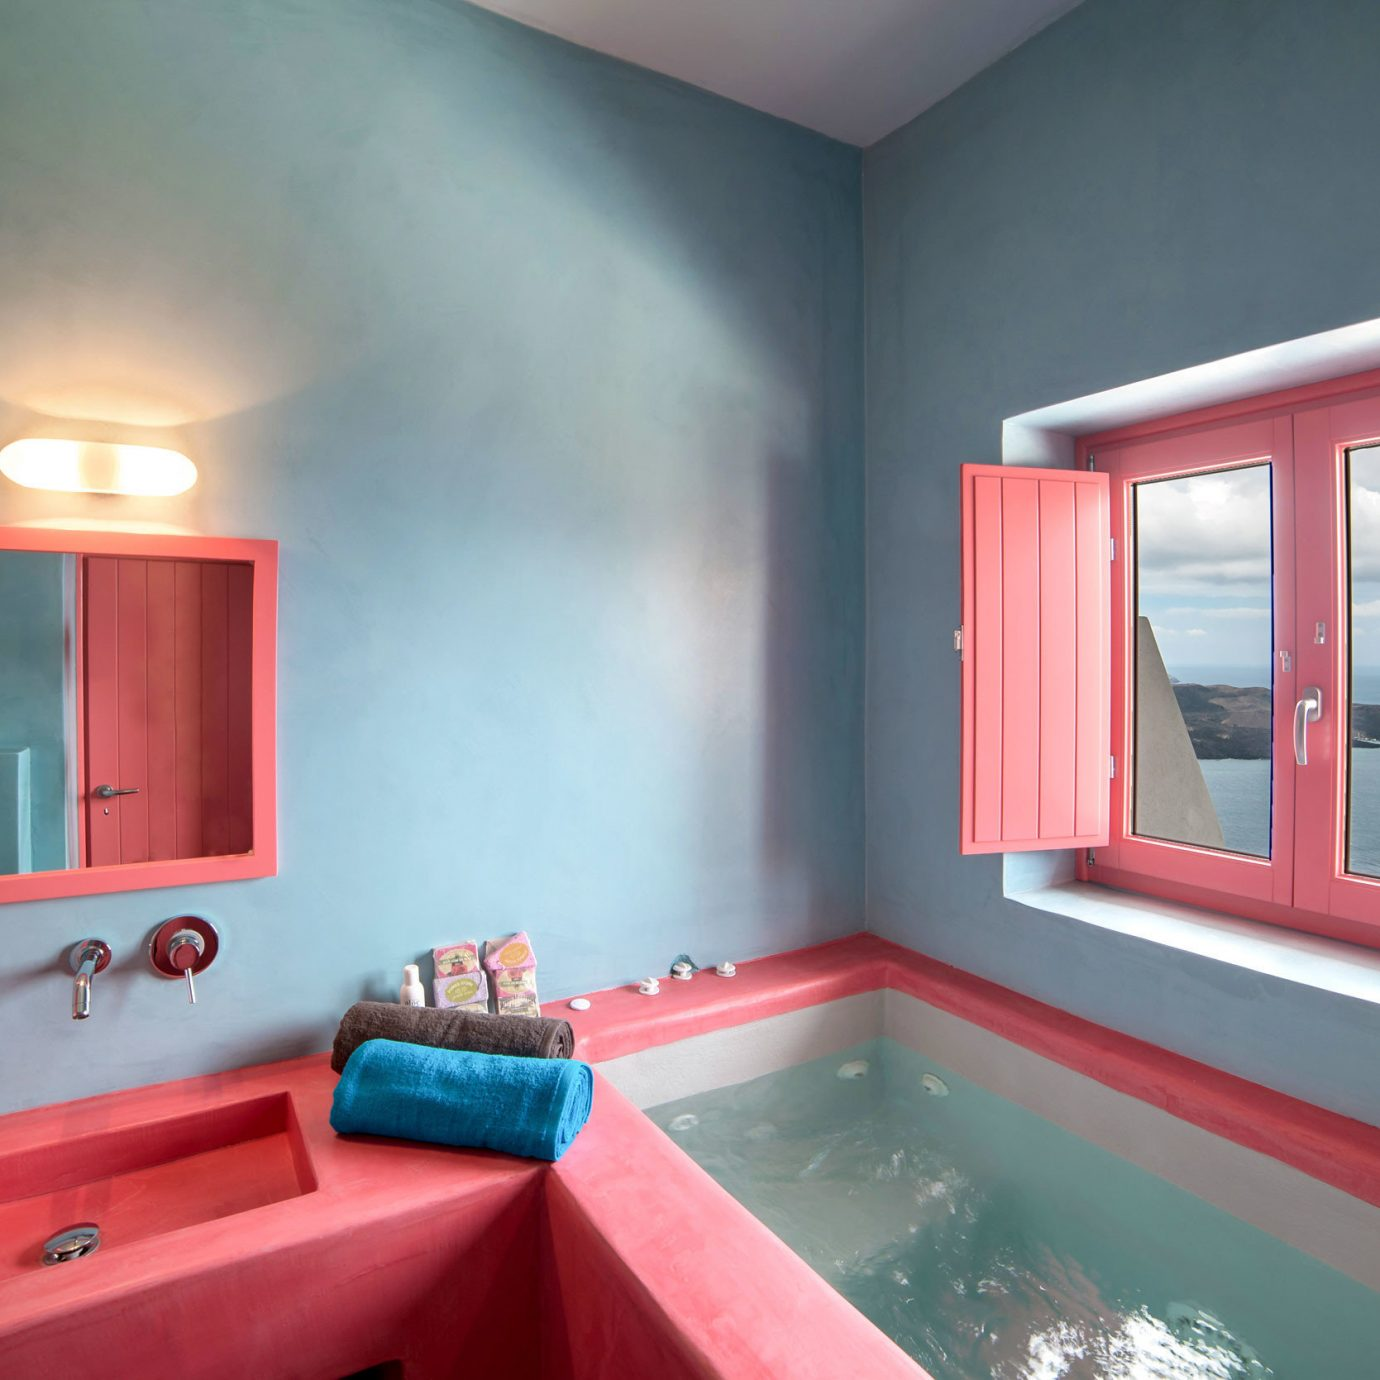 Bath Boutique Suite Waterfront bathroom sink red property pink house painted swimming pool bright home Bedroom living room light cottage colored